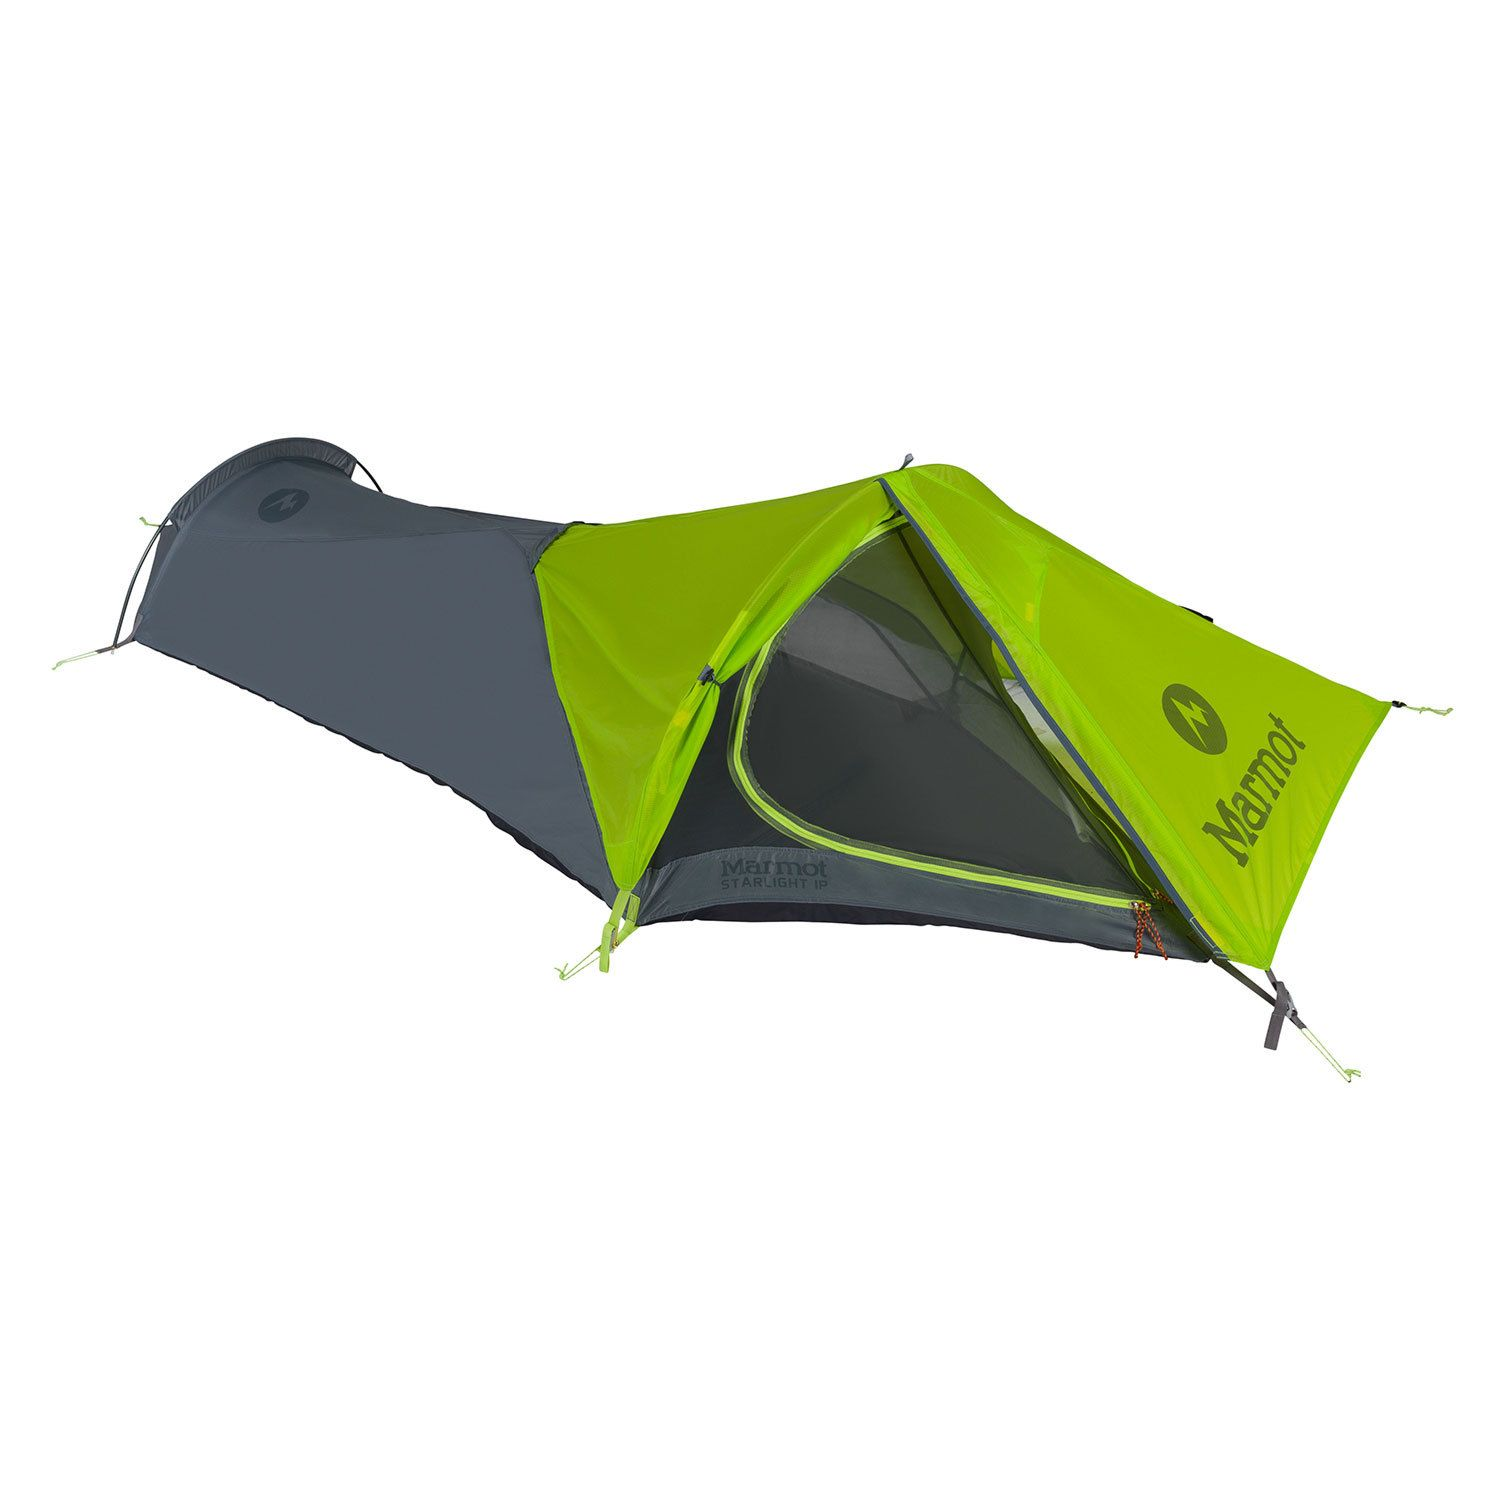 Marmot Starlight Tent Green LimeSteel *** Check out this great product.  sc 1 st  Pinterest & MARMOT Starlight 1 Person Tent - green lime - steel_open alt ...